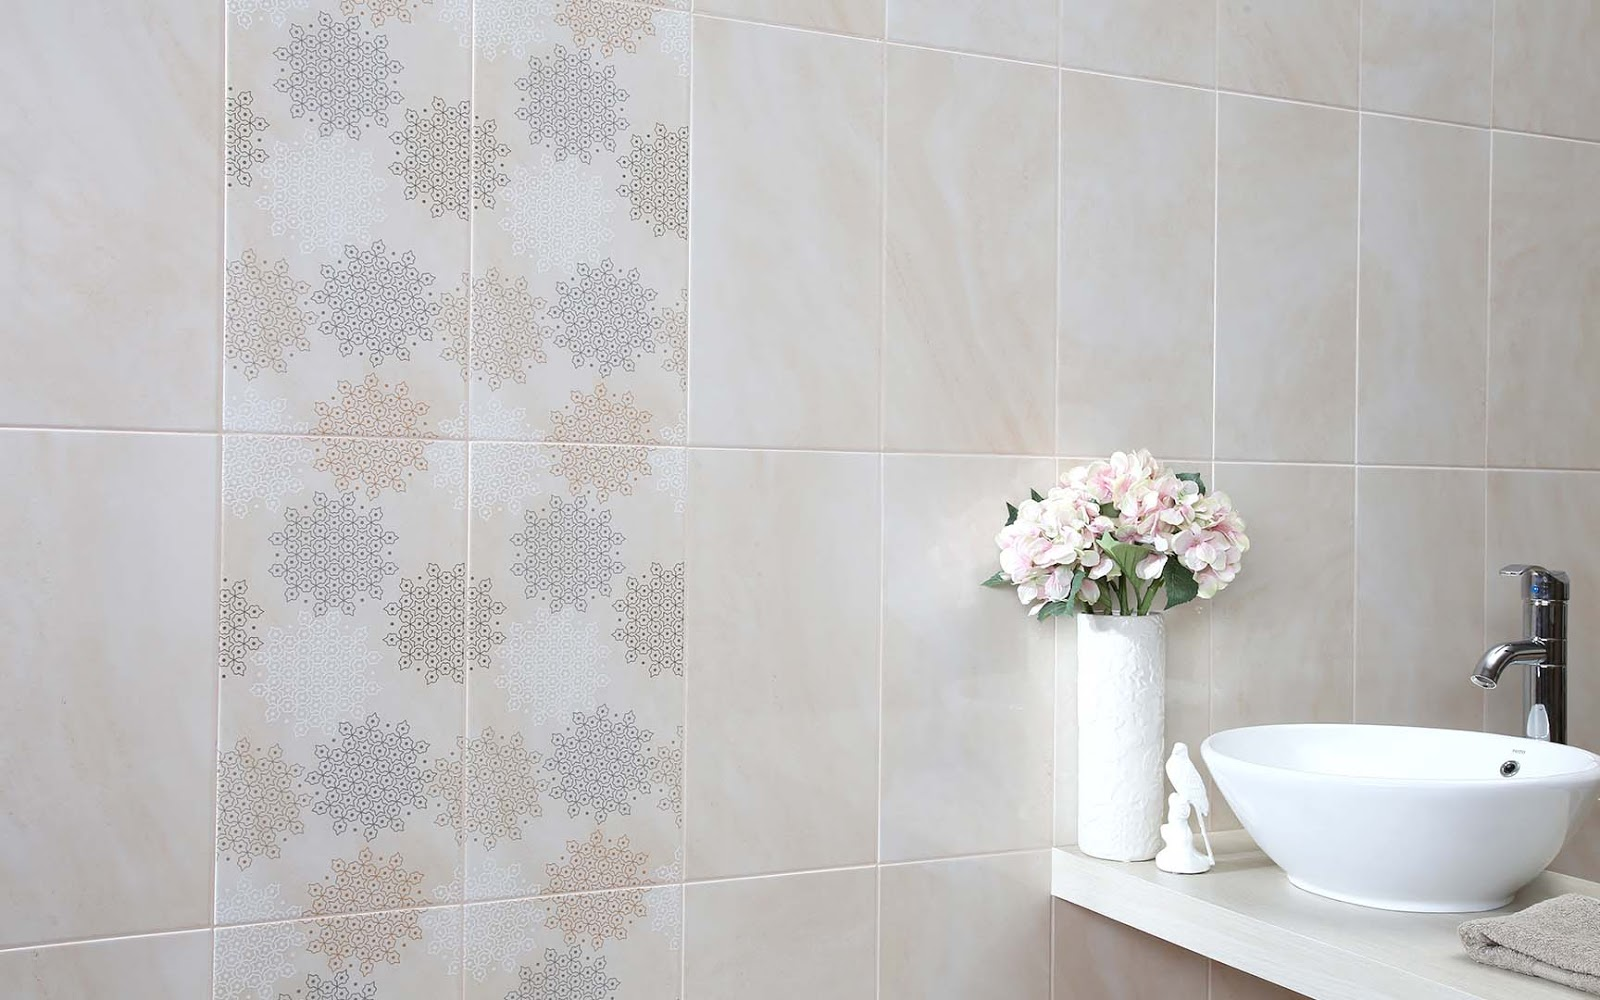 Sell Wall Tile Roman dMonza from Indonesia by Pusat Keramik Roman ...